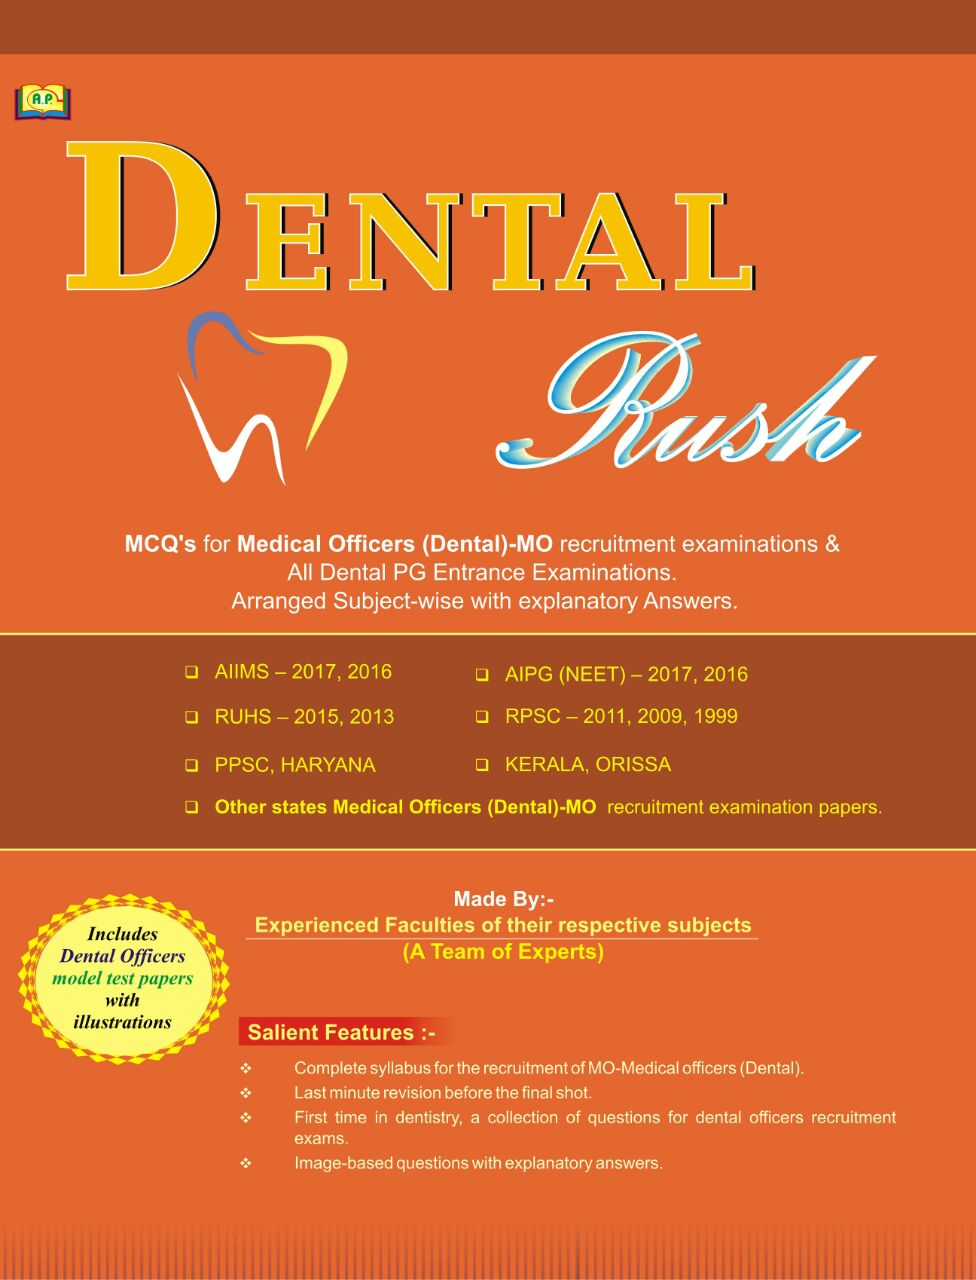 Best and Low Price - Dental Rush - MCQs for Medical Officers